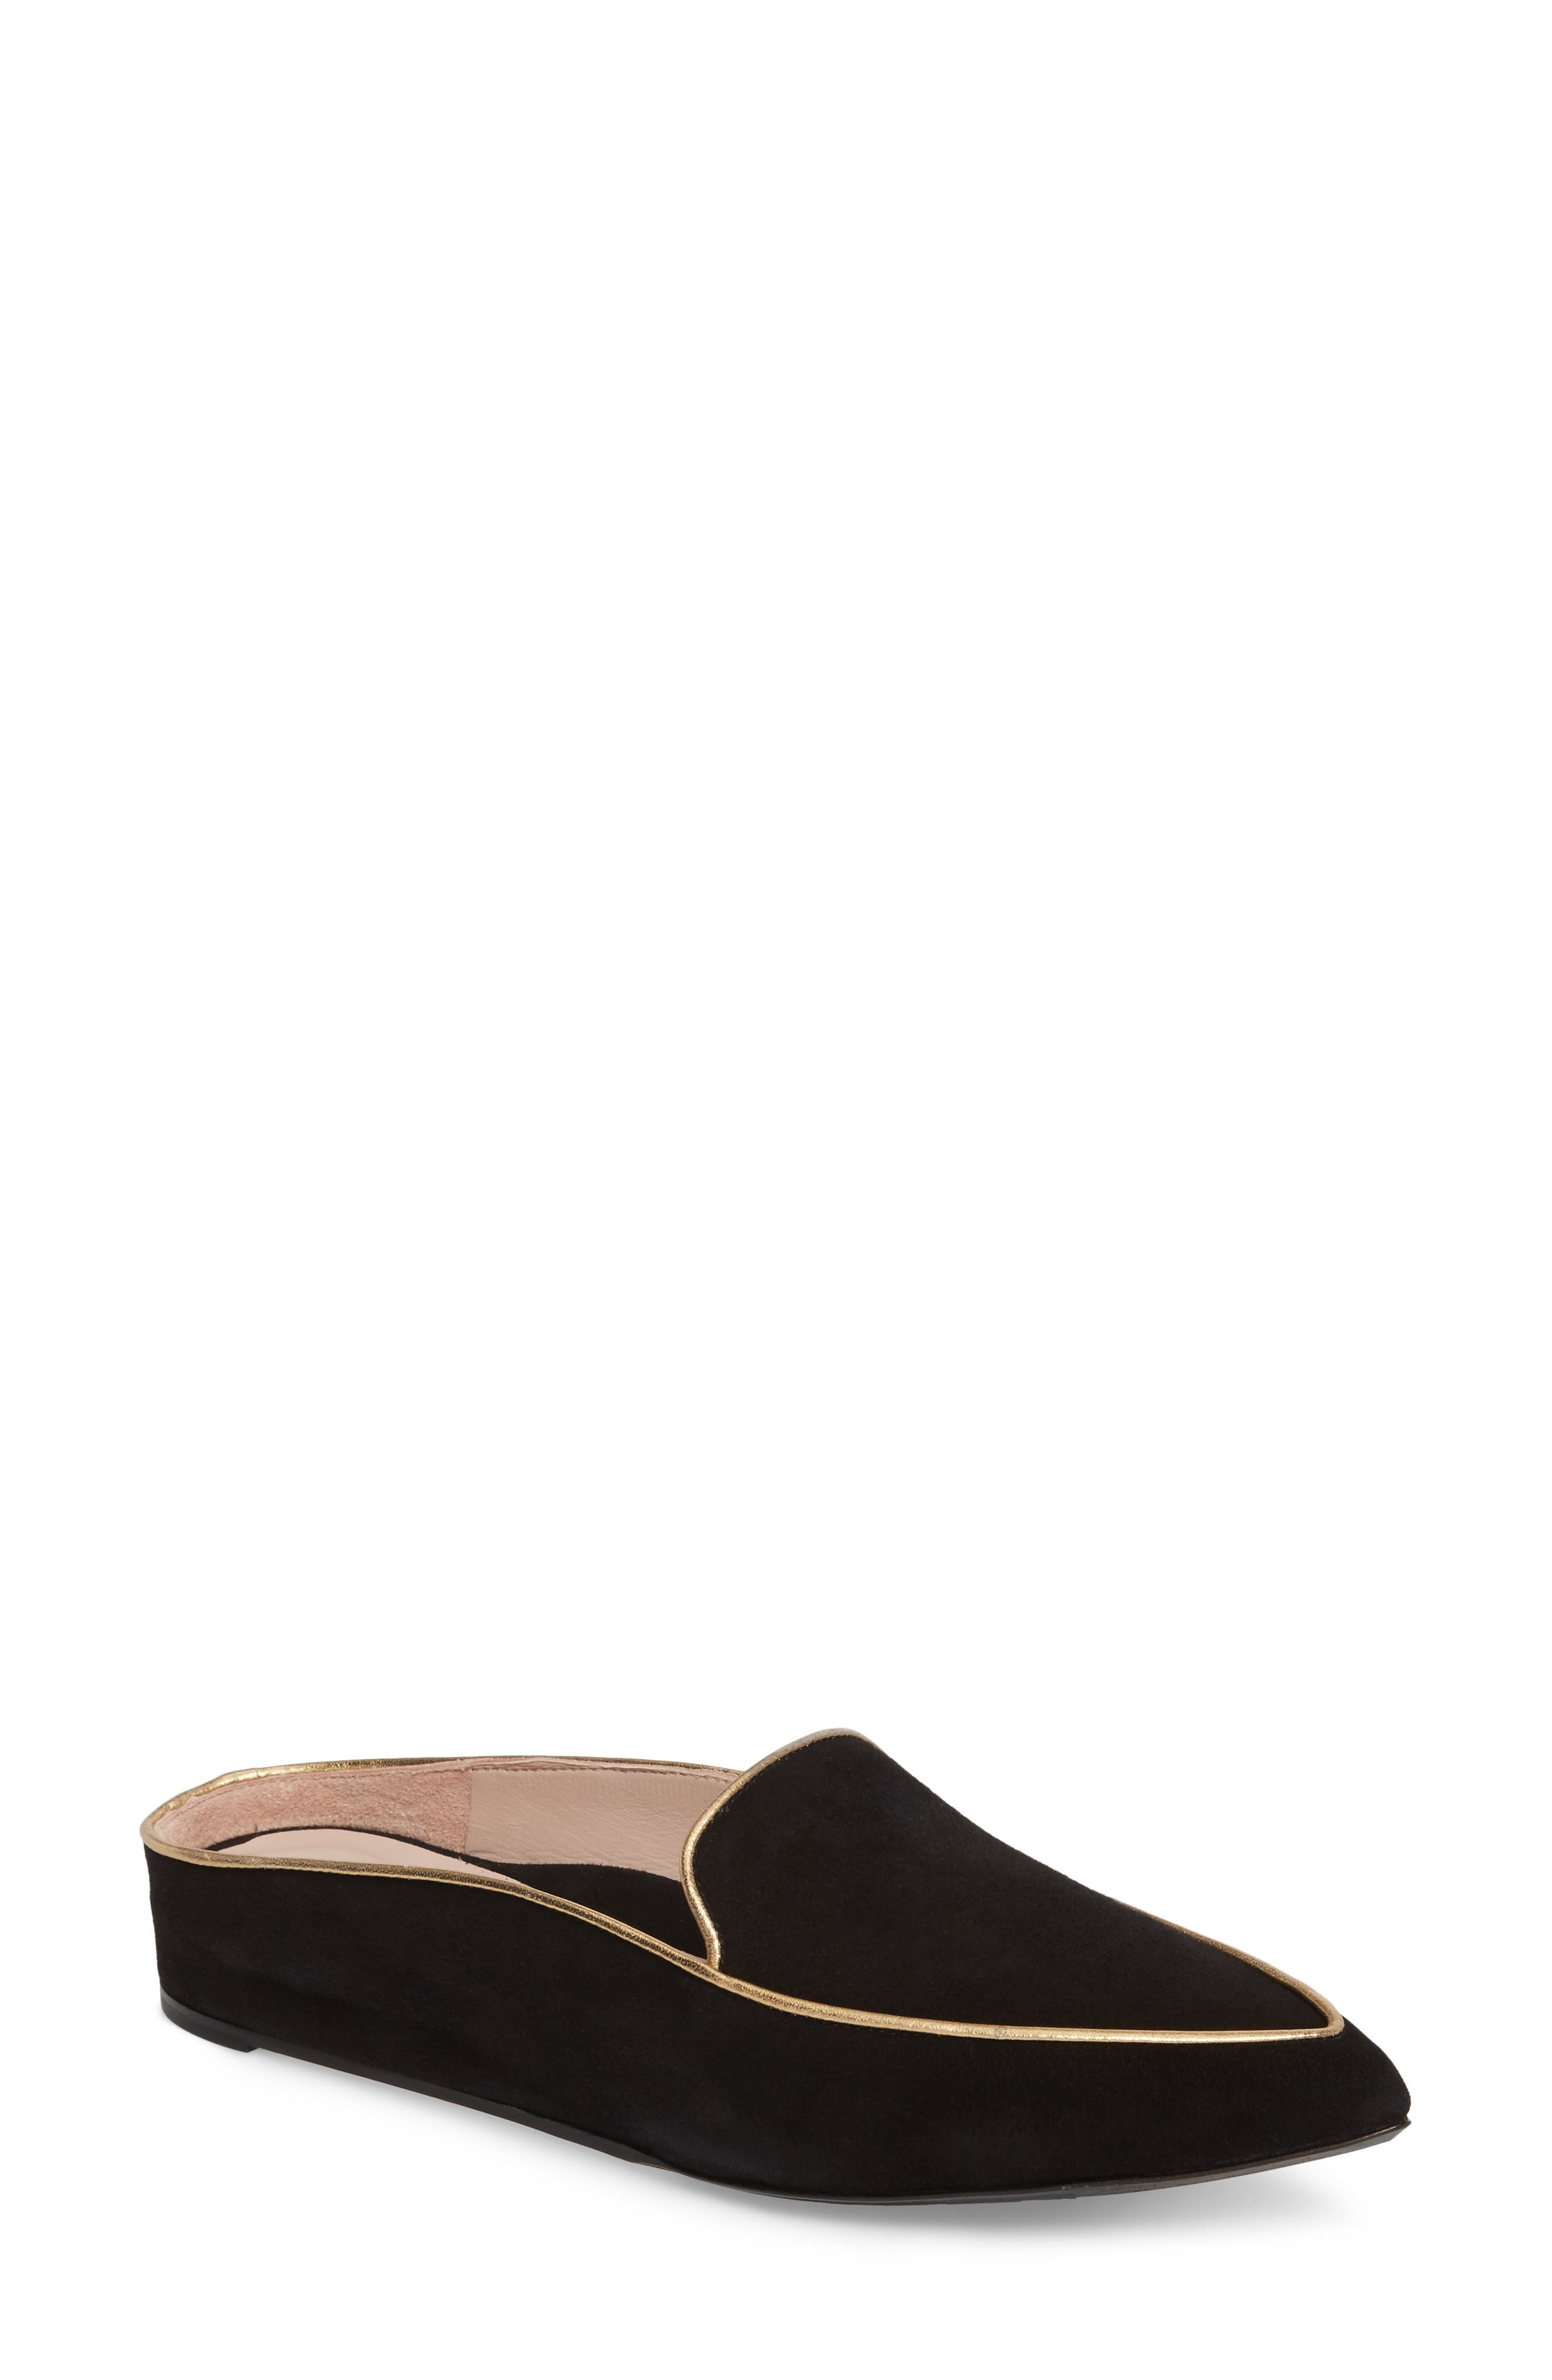 Taryn Rose Renatta Mule,                         Main,                         color, 004